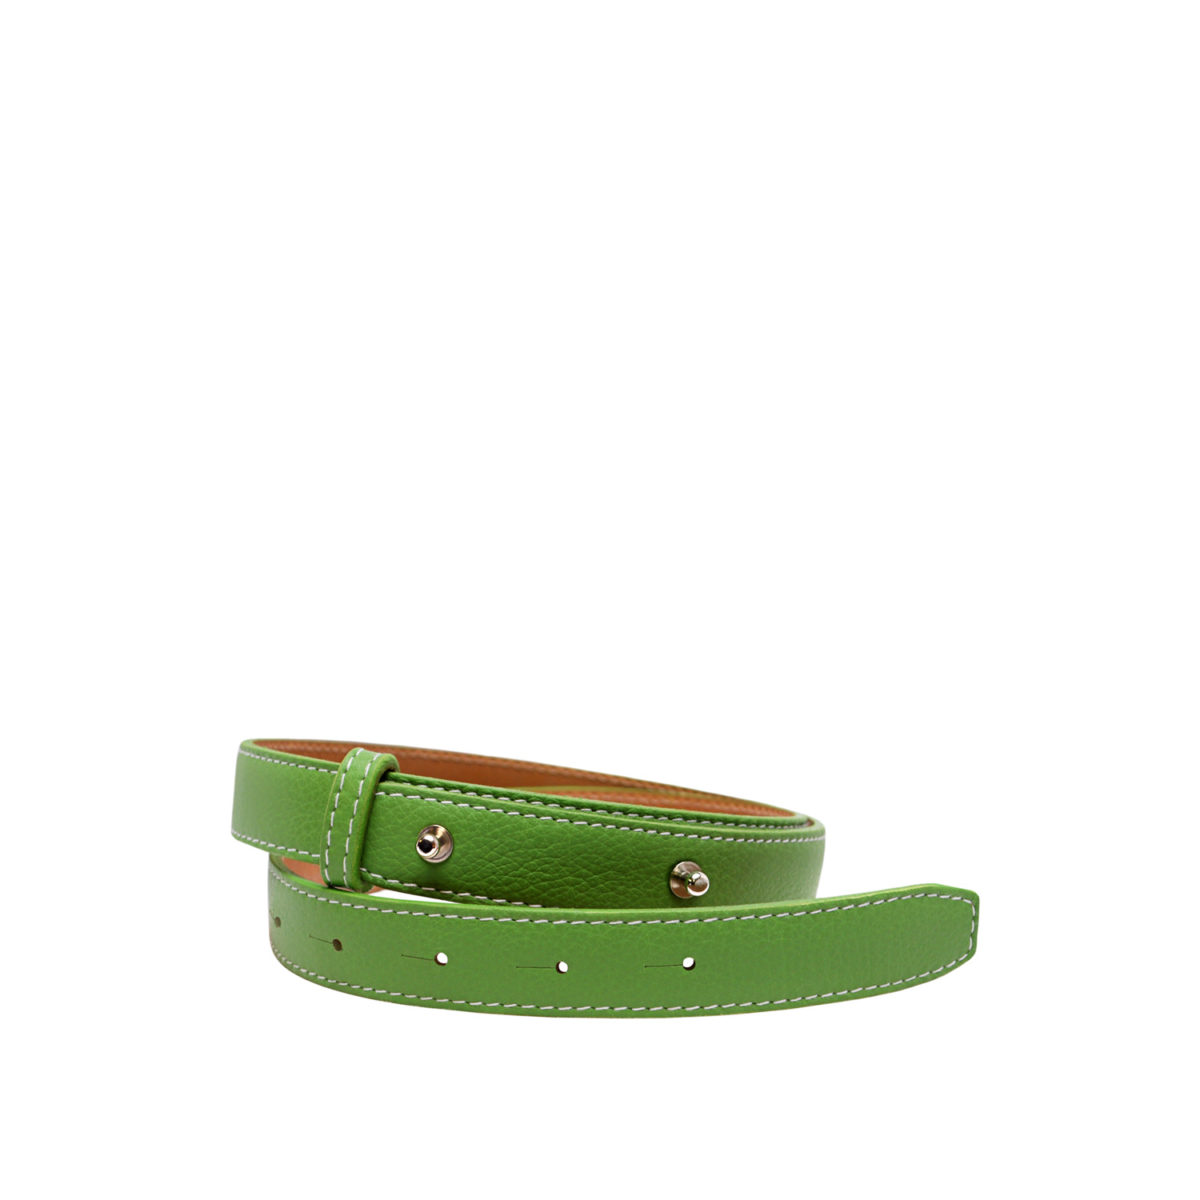 CEINTURE COL SIMPLE 2.5CM